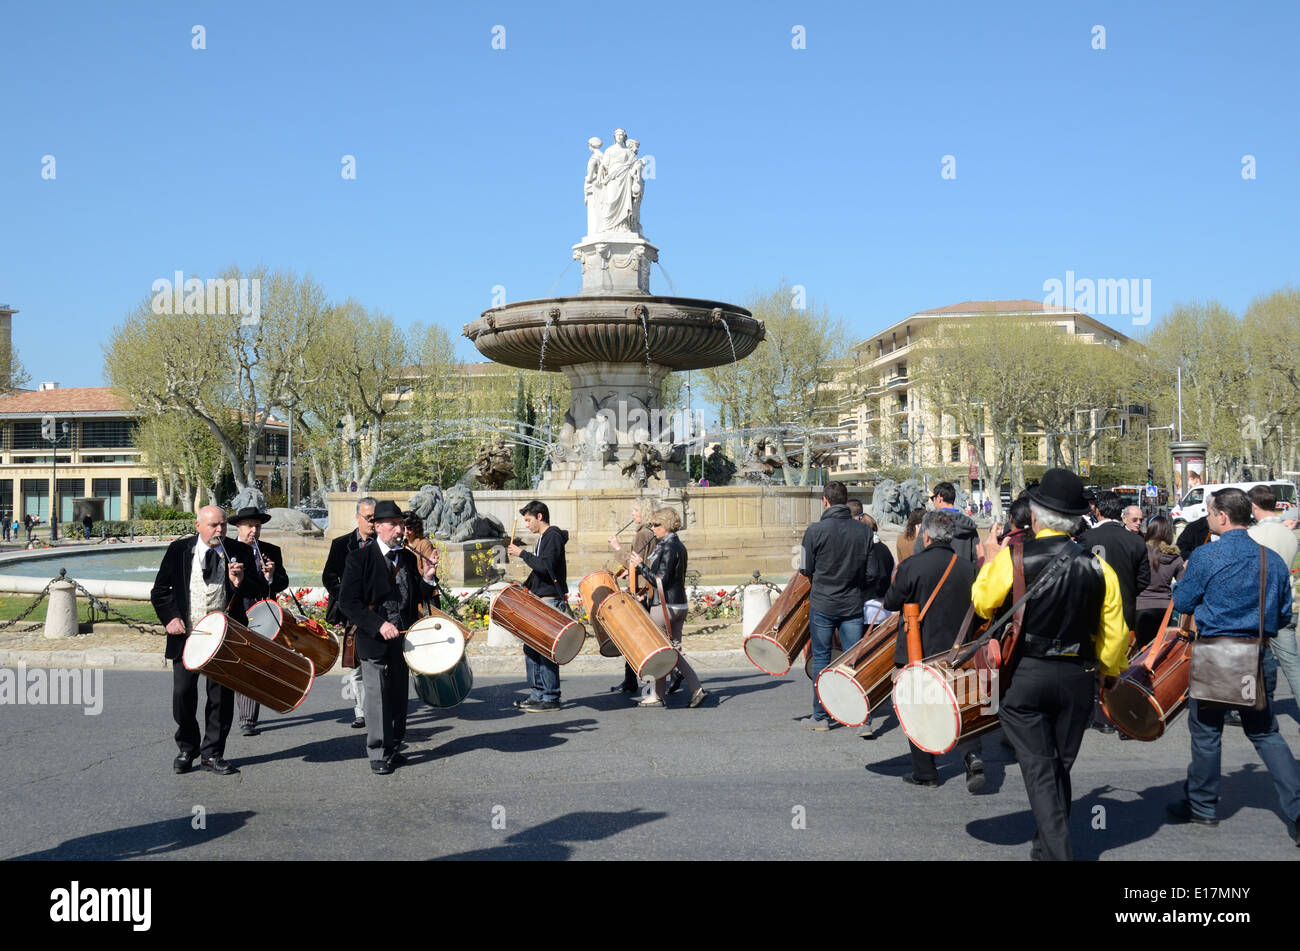 Provençal Musicians or Drummers Playing Traditional Tambourins Drums La Rotonde Fountain Aix-en-Provence France - Stock Image